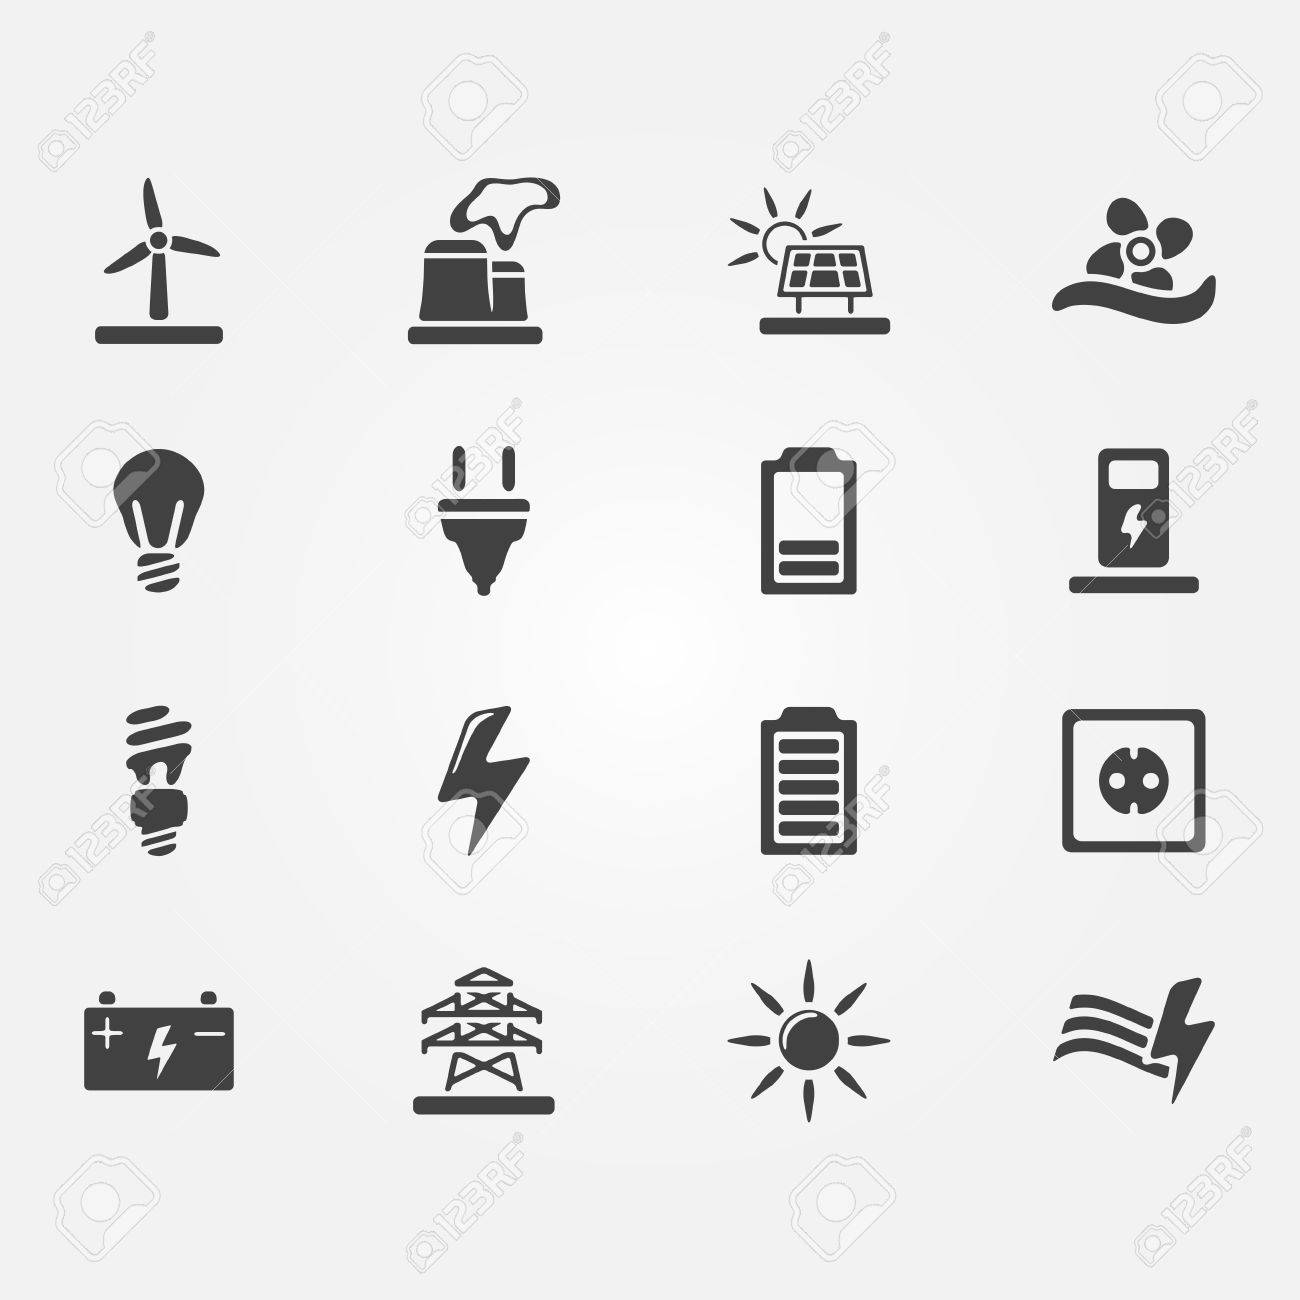 Vector Energy Icons - Set Of Simple Electricity Symbols Royalty Free ...